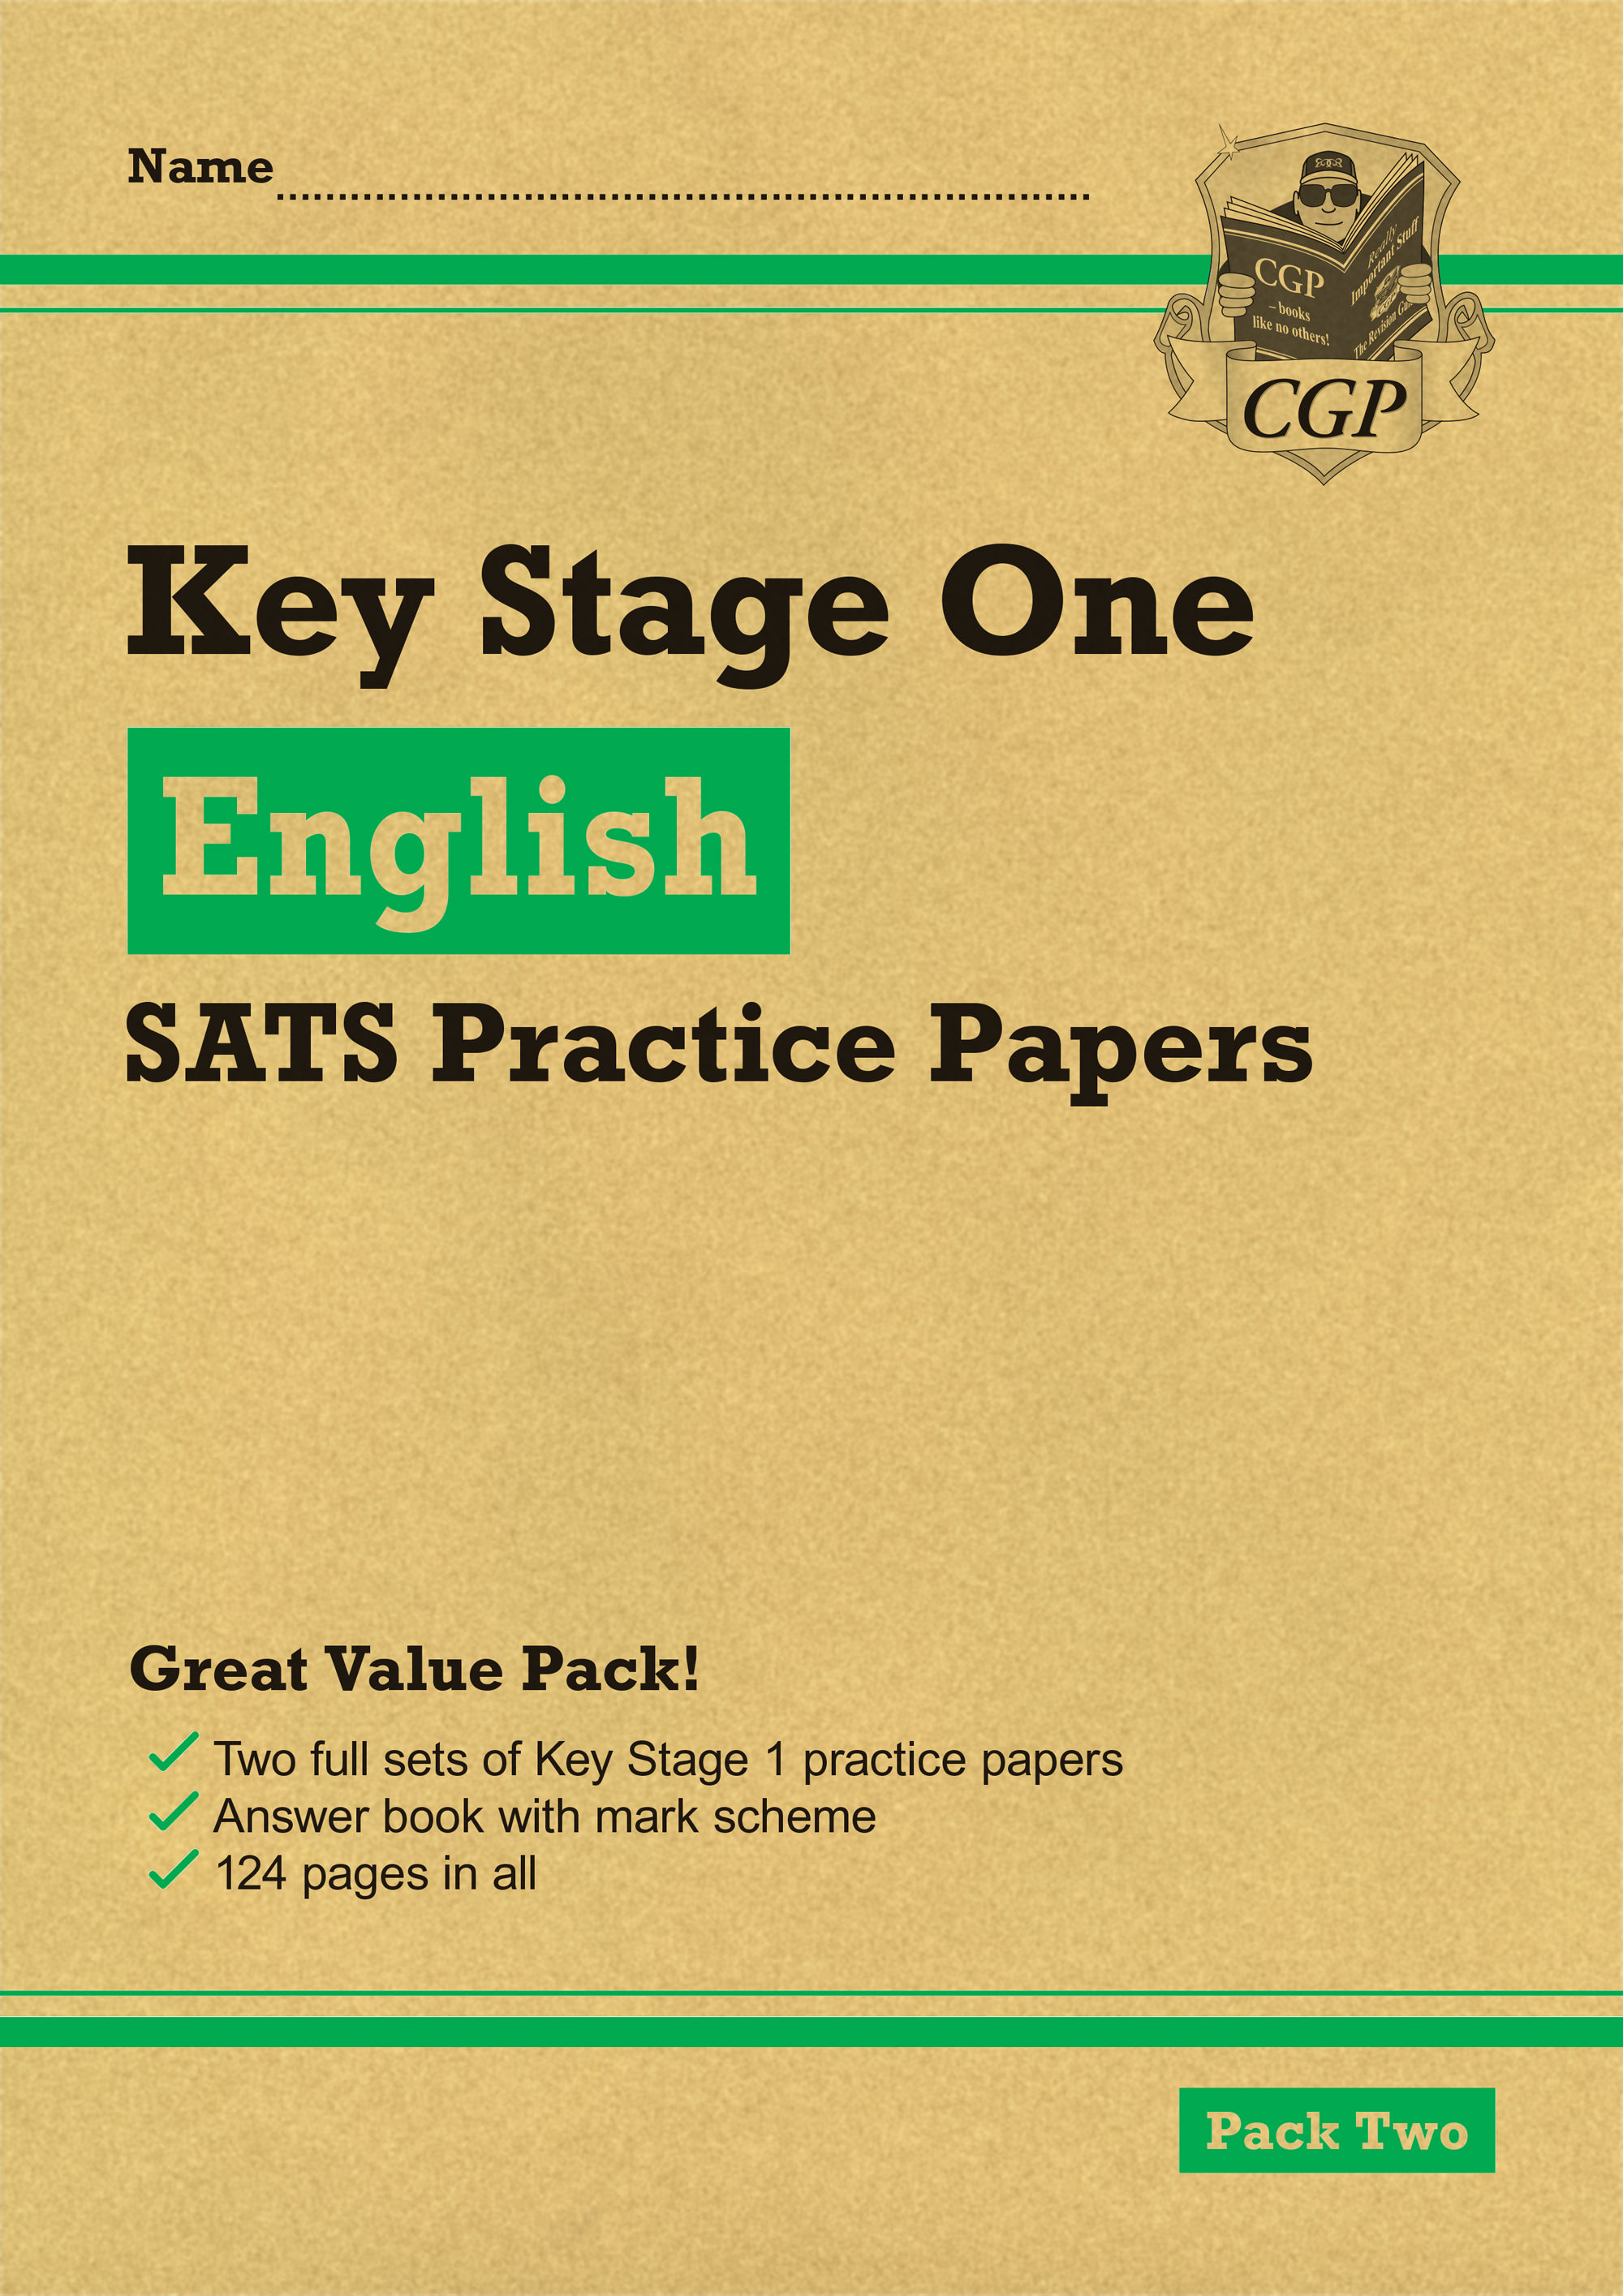 EHGP13 - New KS1 English SATS Practice Papers: Pack 2 (for the 2020 tests)